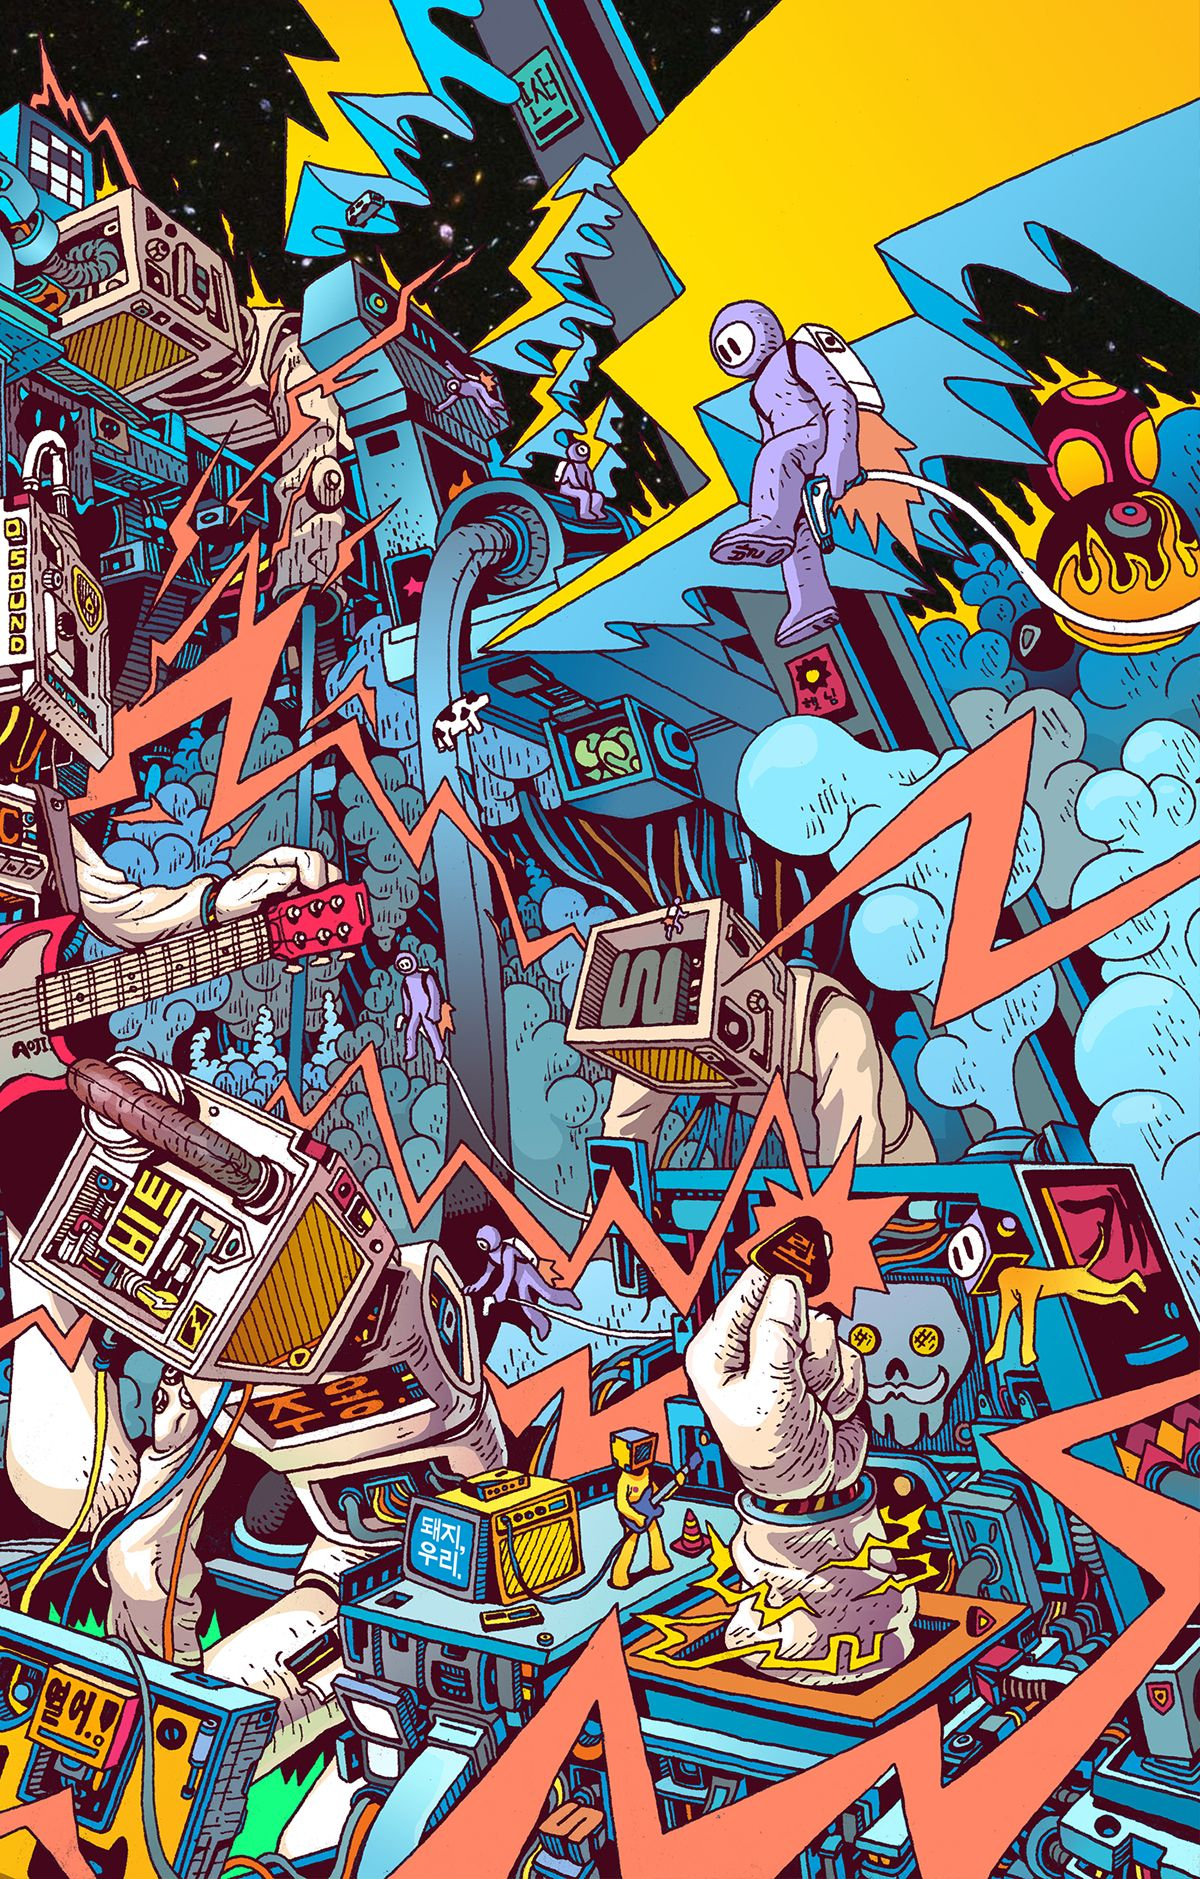 Space Age Graffiti Wall Mural Graffiti wallpaper